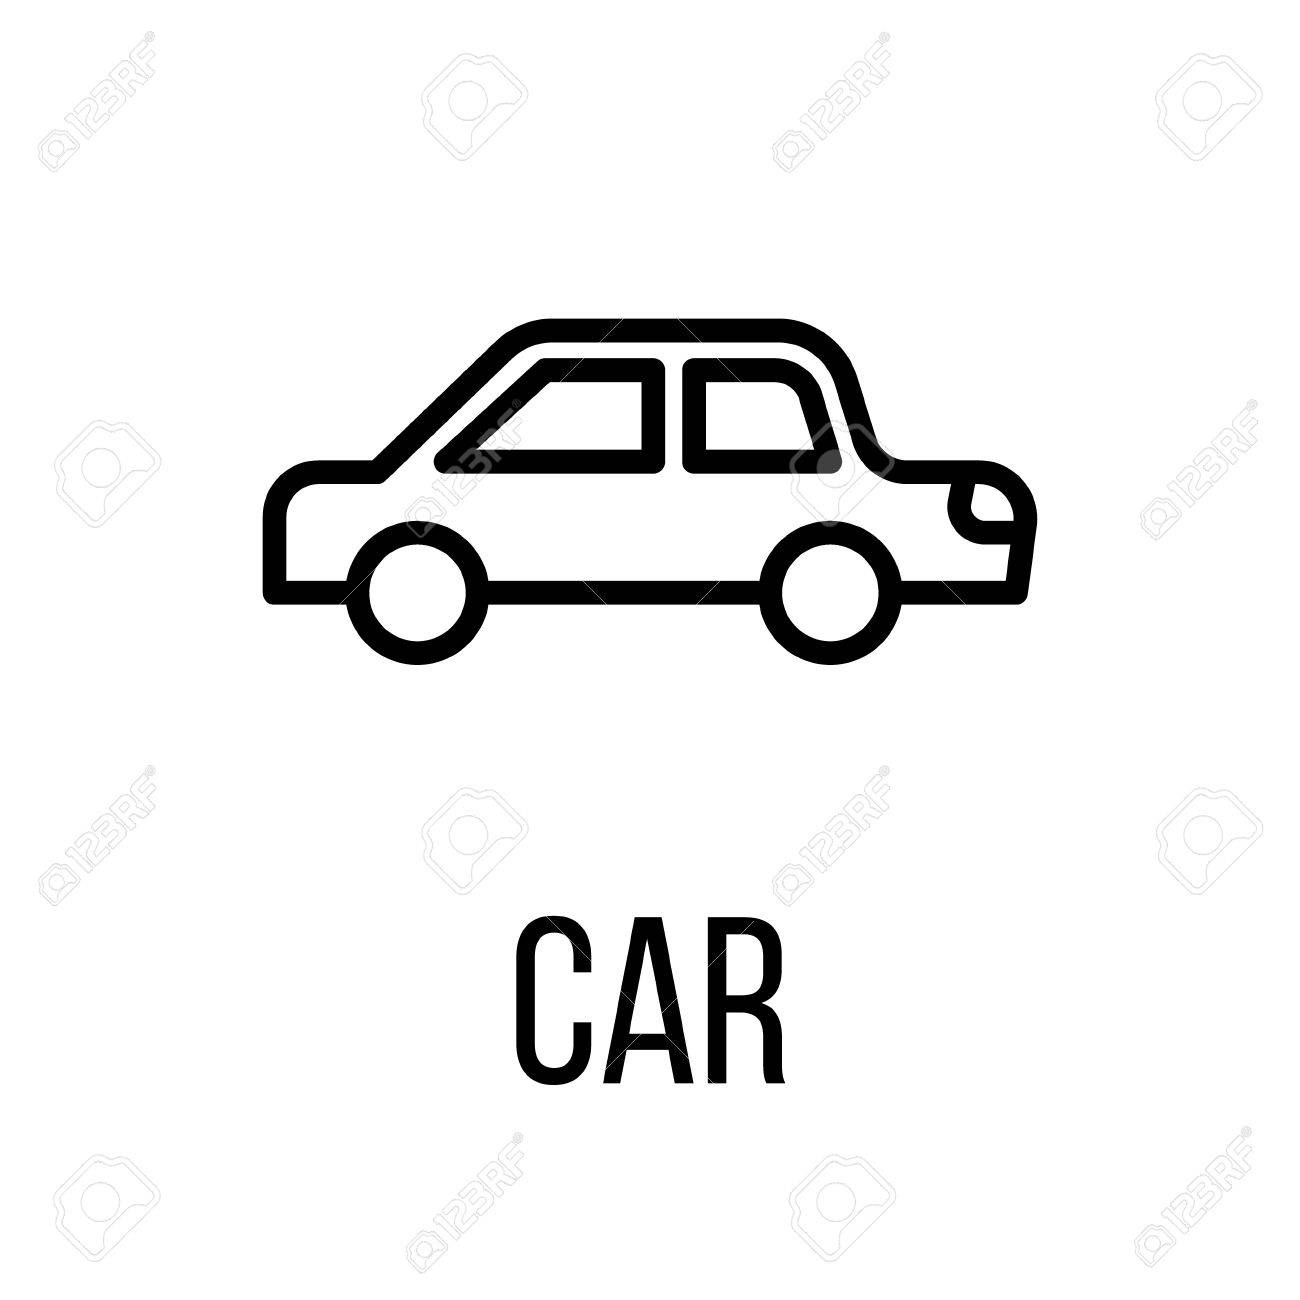 car icon or logo in modern line style high quality black outline